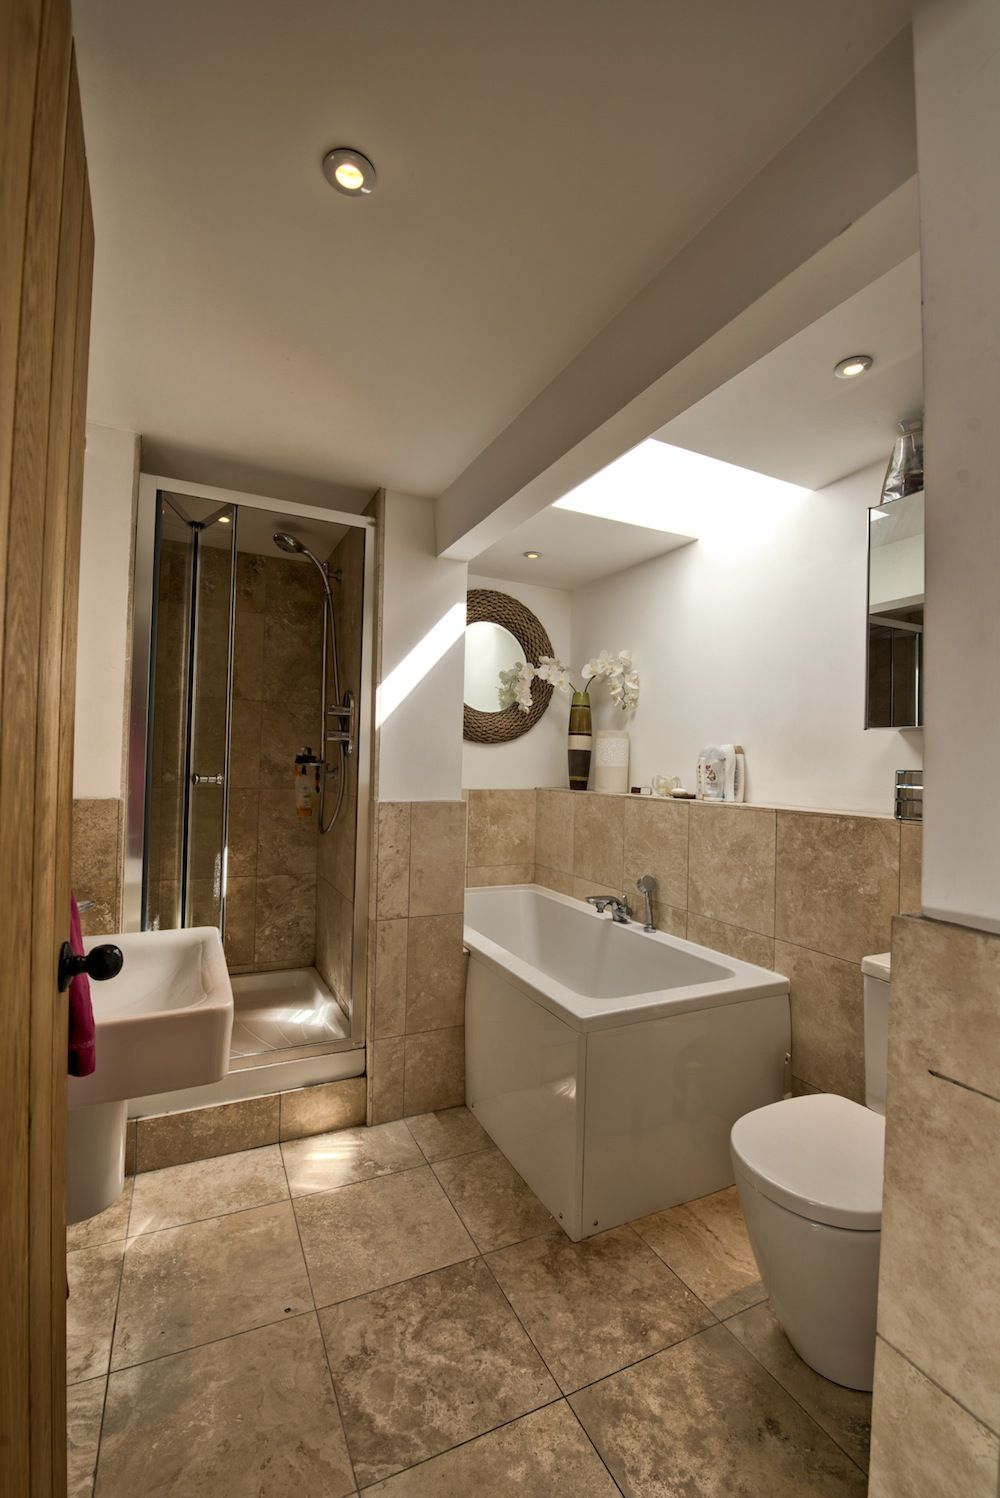 Beautiful Bathrooms To Match The Bedrooms Beautiful Bathrooms Bathroom Design Bathroom Oasis Beautiful bedrooms and bathrooms